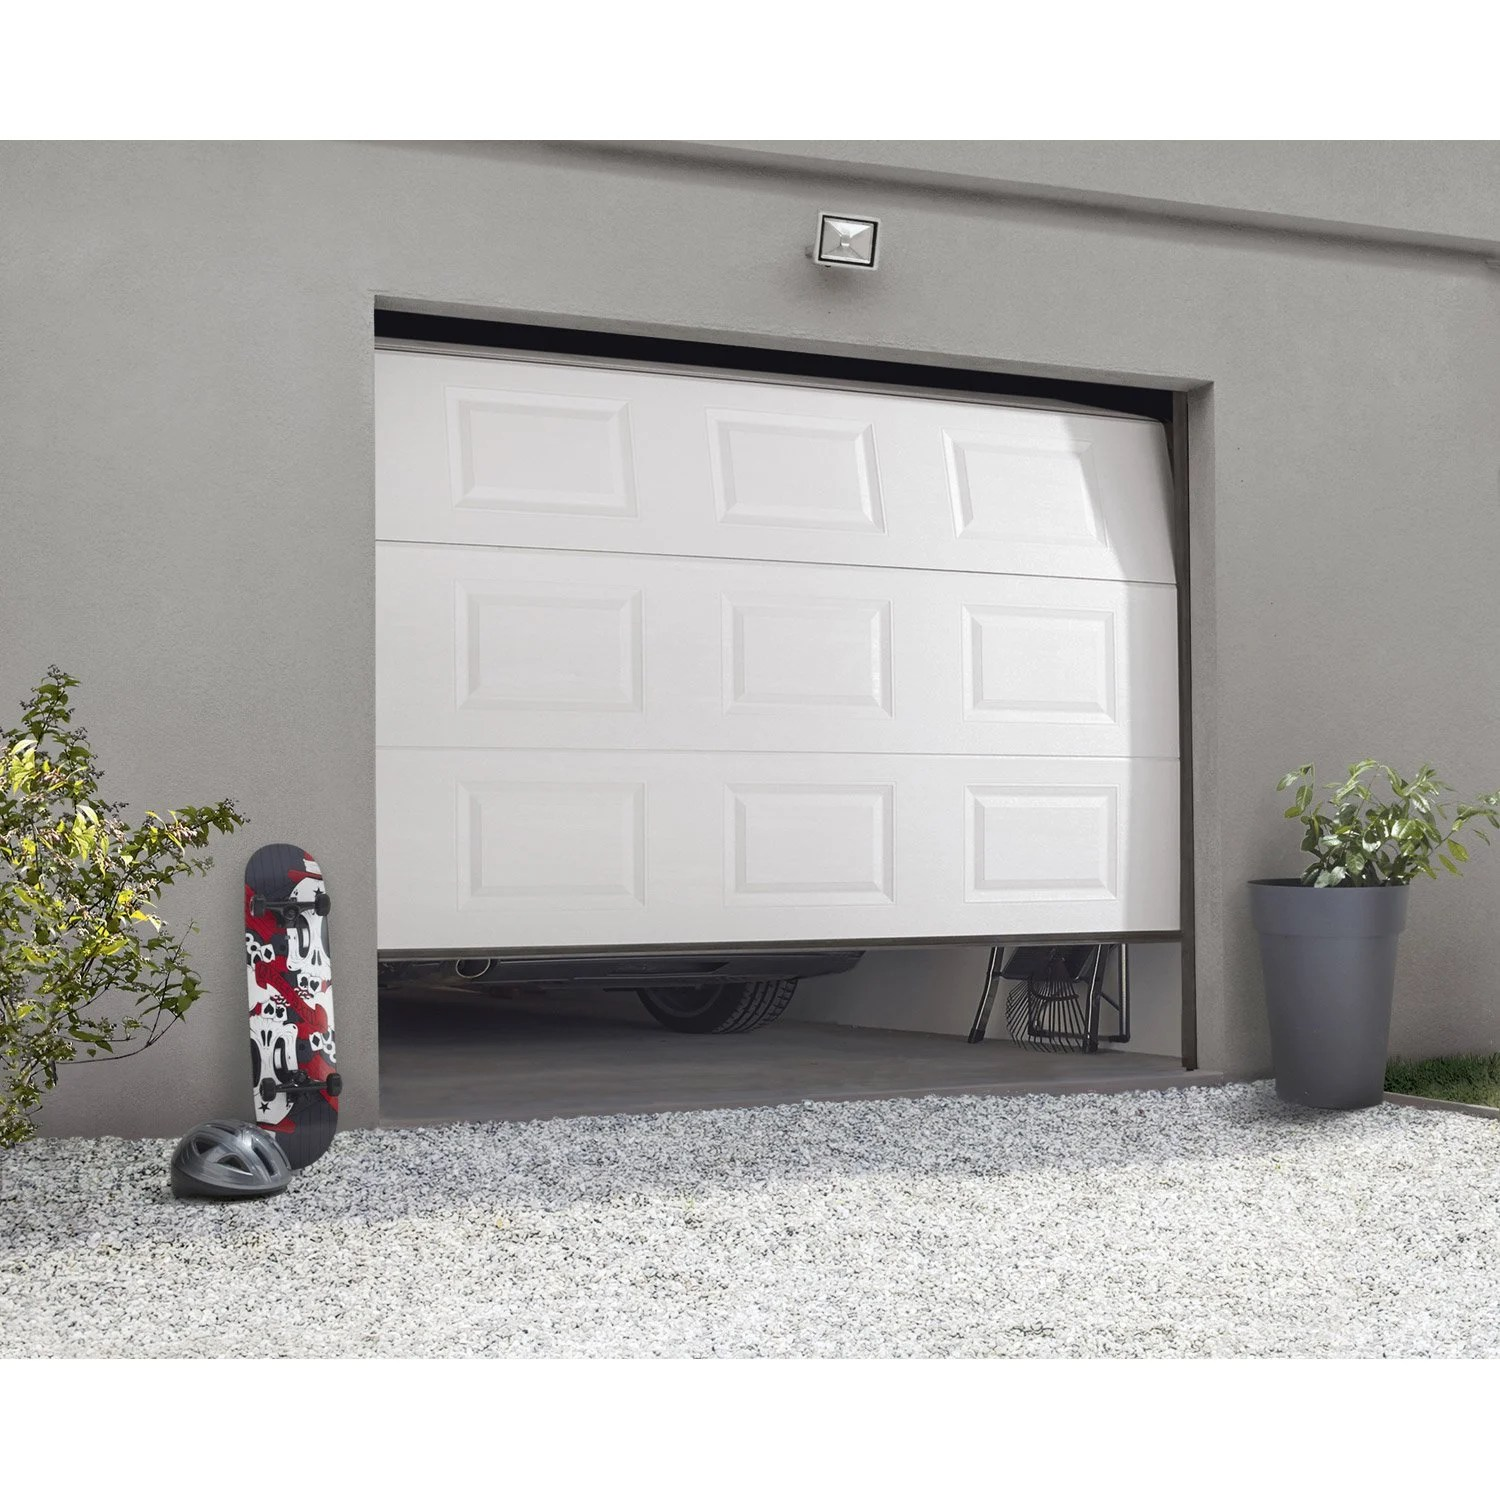 Porte de garage sectionnelle motoris    e ARTENS essentiel H 200 x l     Porte de garage sectionnelle motoris    e ARTENS essentiel H 200 x l 240 cm